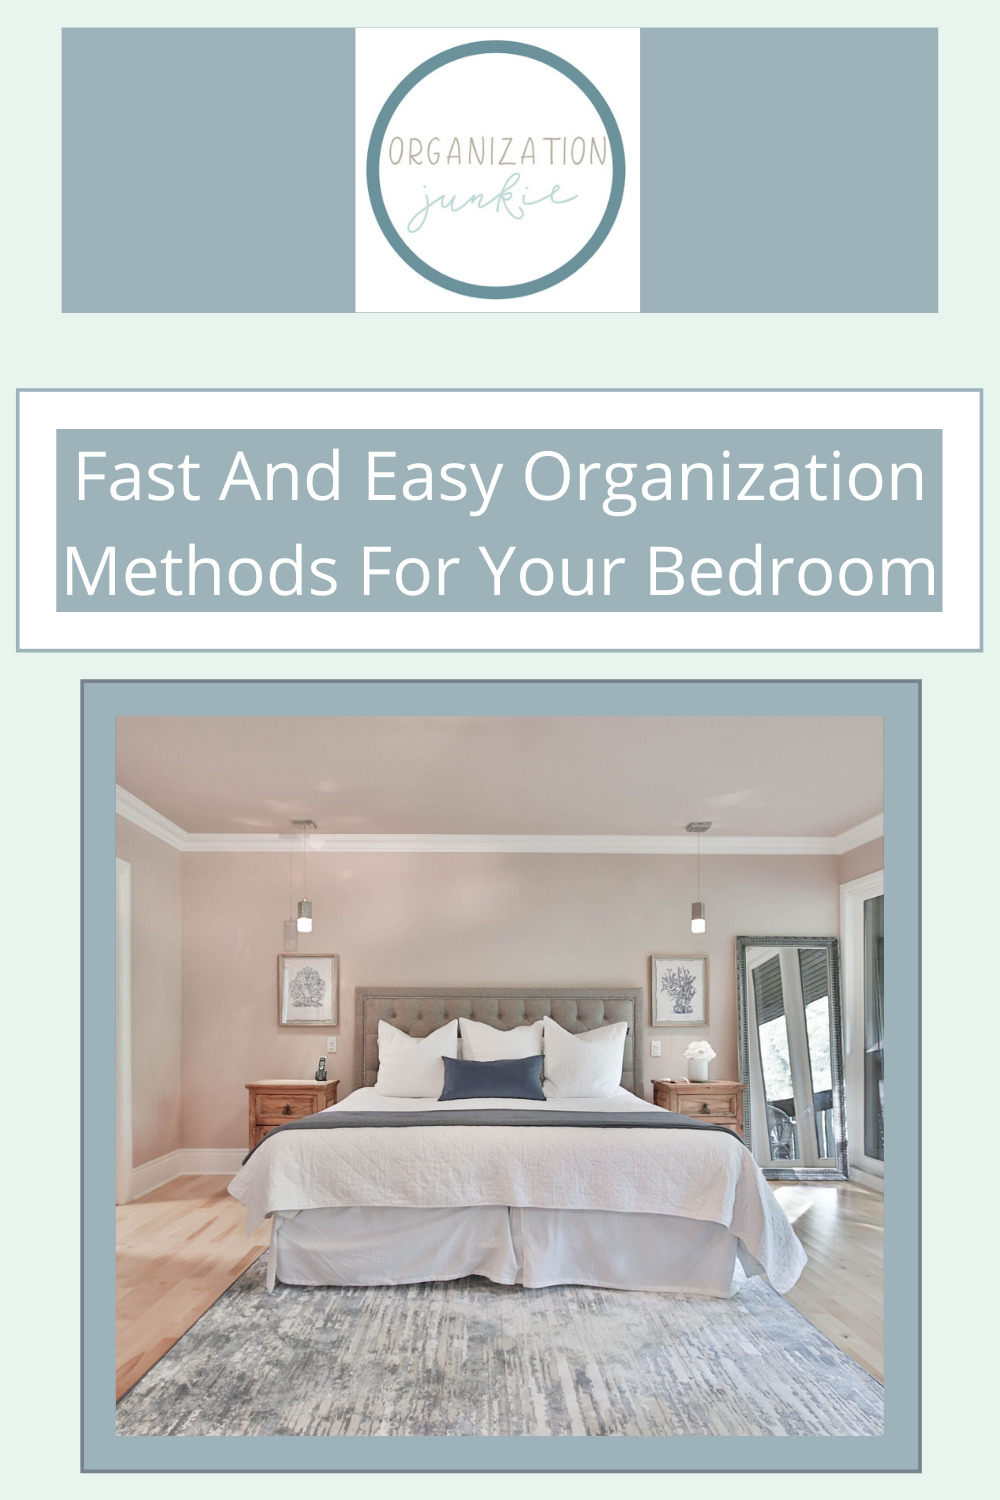 Organizationjunkie.com is stacked with creative ideas for keeping a clean and organized space. Find out how you can wipe out clutter in an instant. These clever ideas will have your bedroom totally organized in no time!